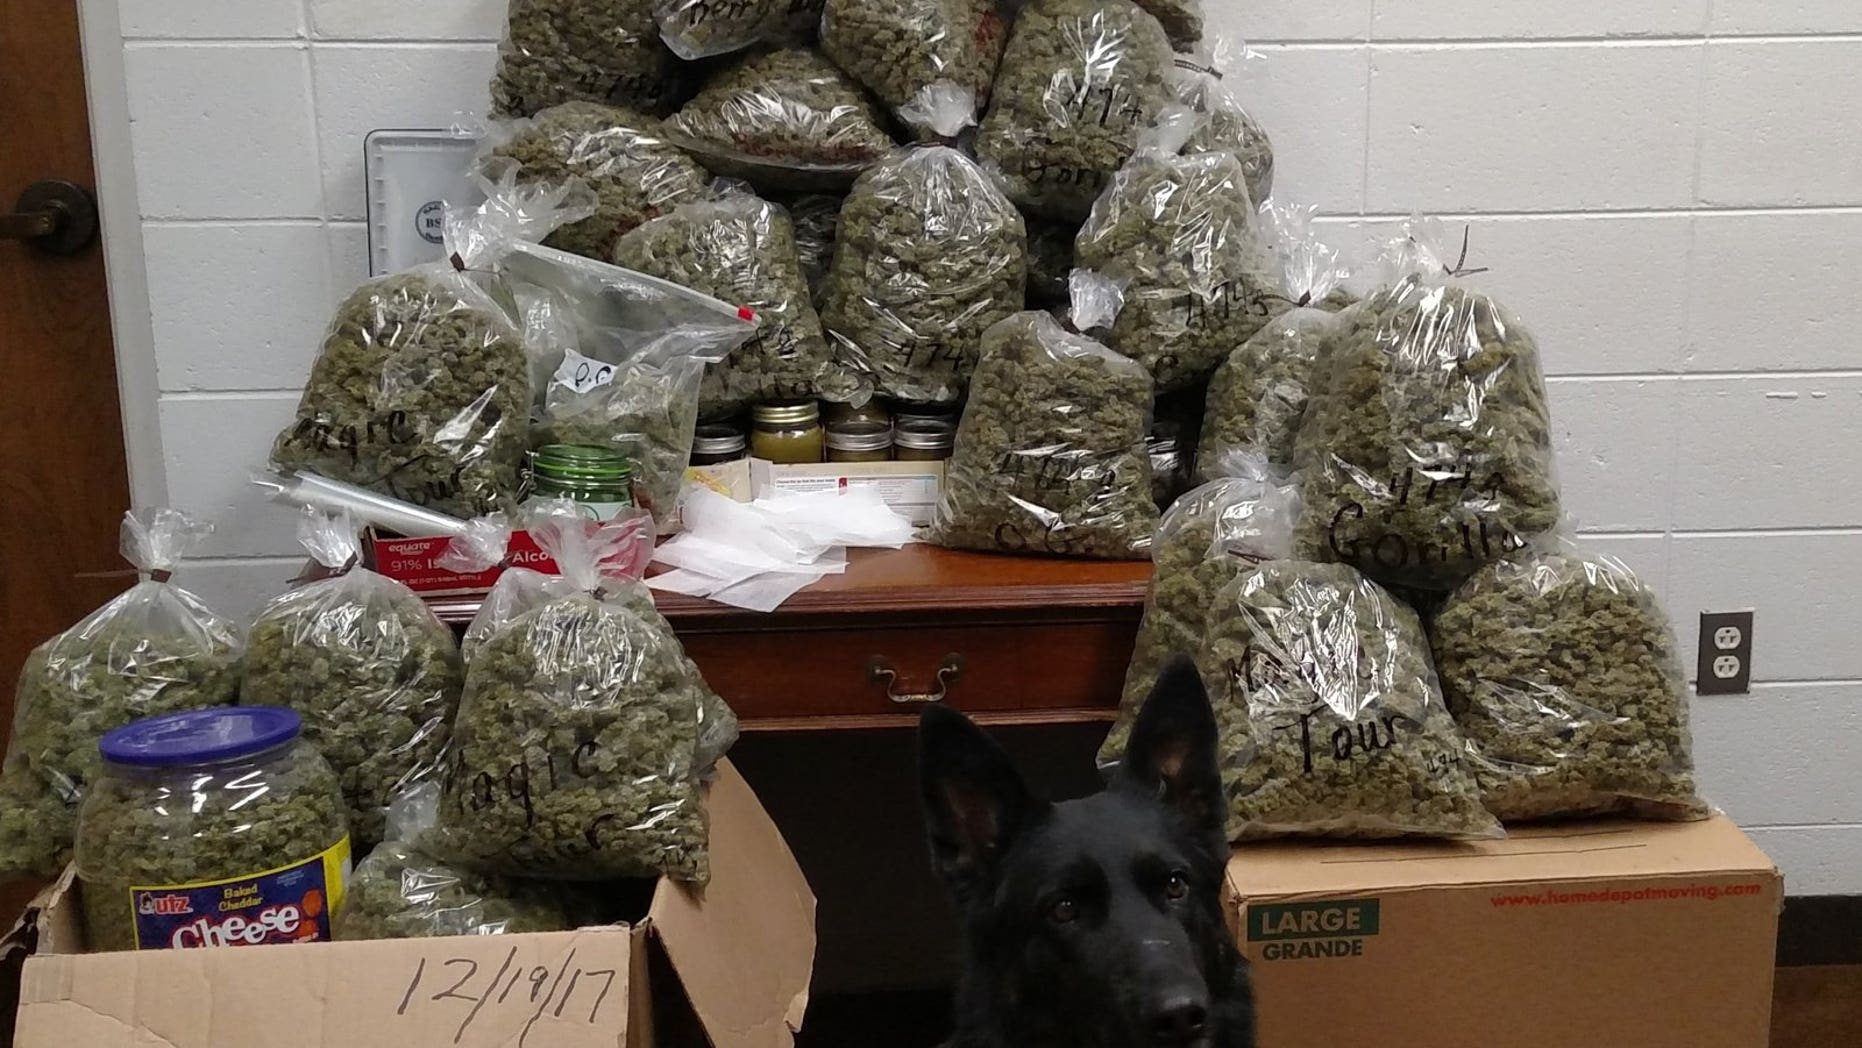 60 pounds of weed, valued at more than $300,000, was discovered by authorities in Nebraska in the truck of an elderly couple.